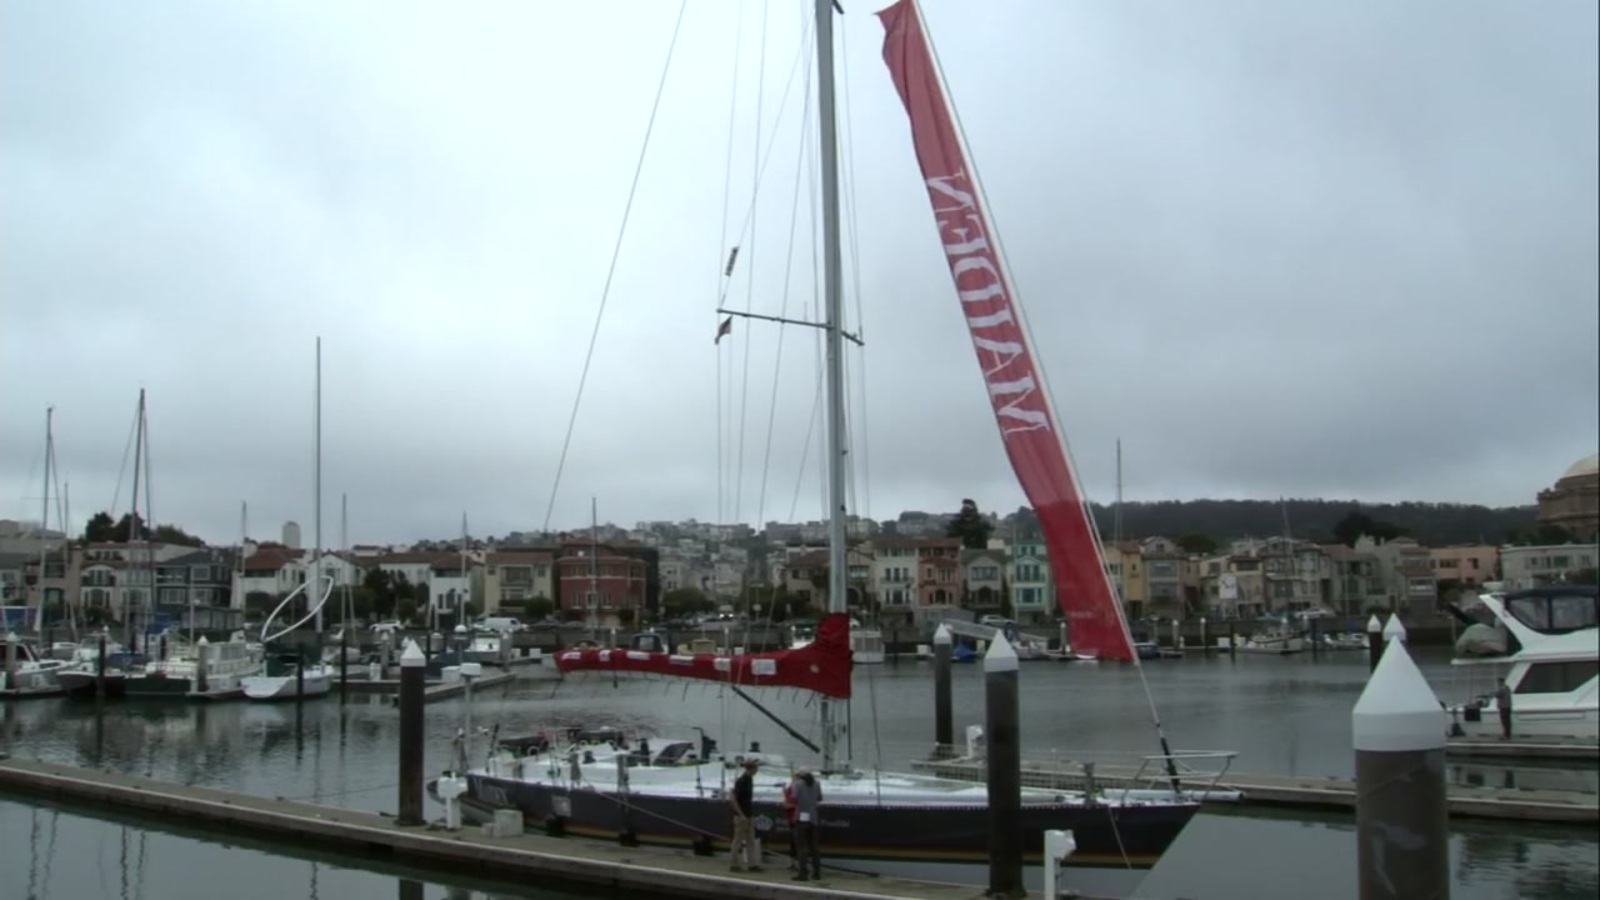 All female crew sailing around the world makes stop in San Francisco